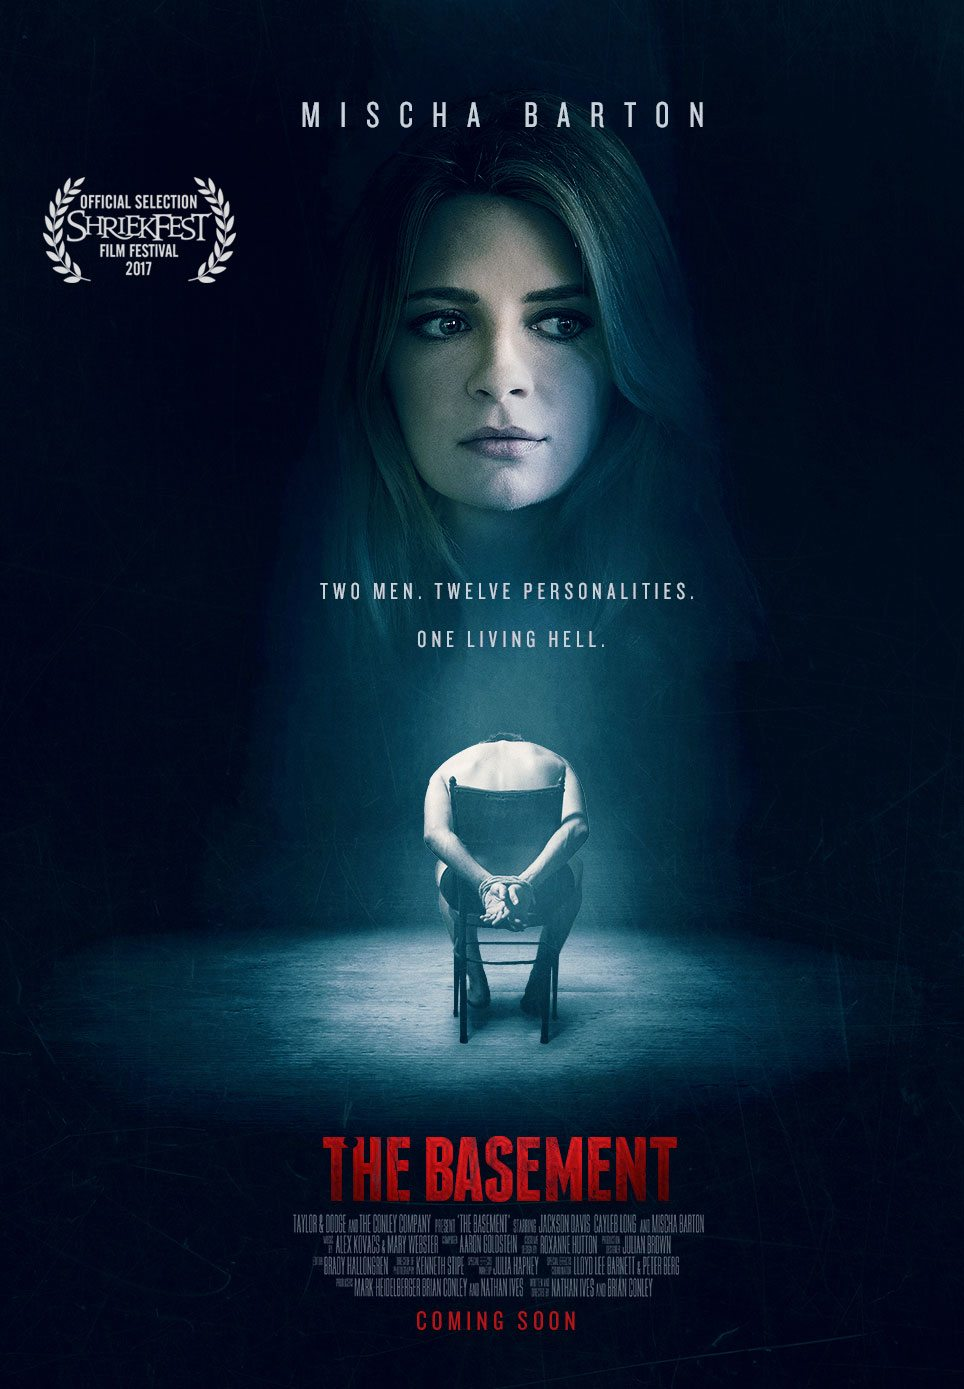 The Basement Poster V1 Web - The Basement - From SFX to VFX: A Visual Anatomy of a Decapitation